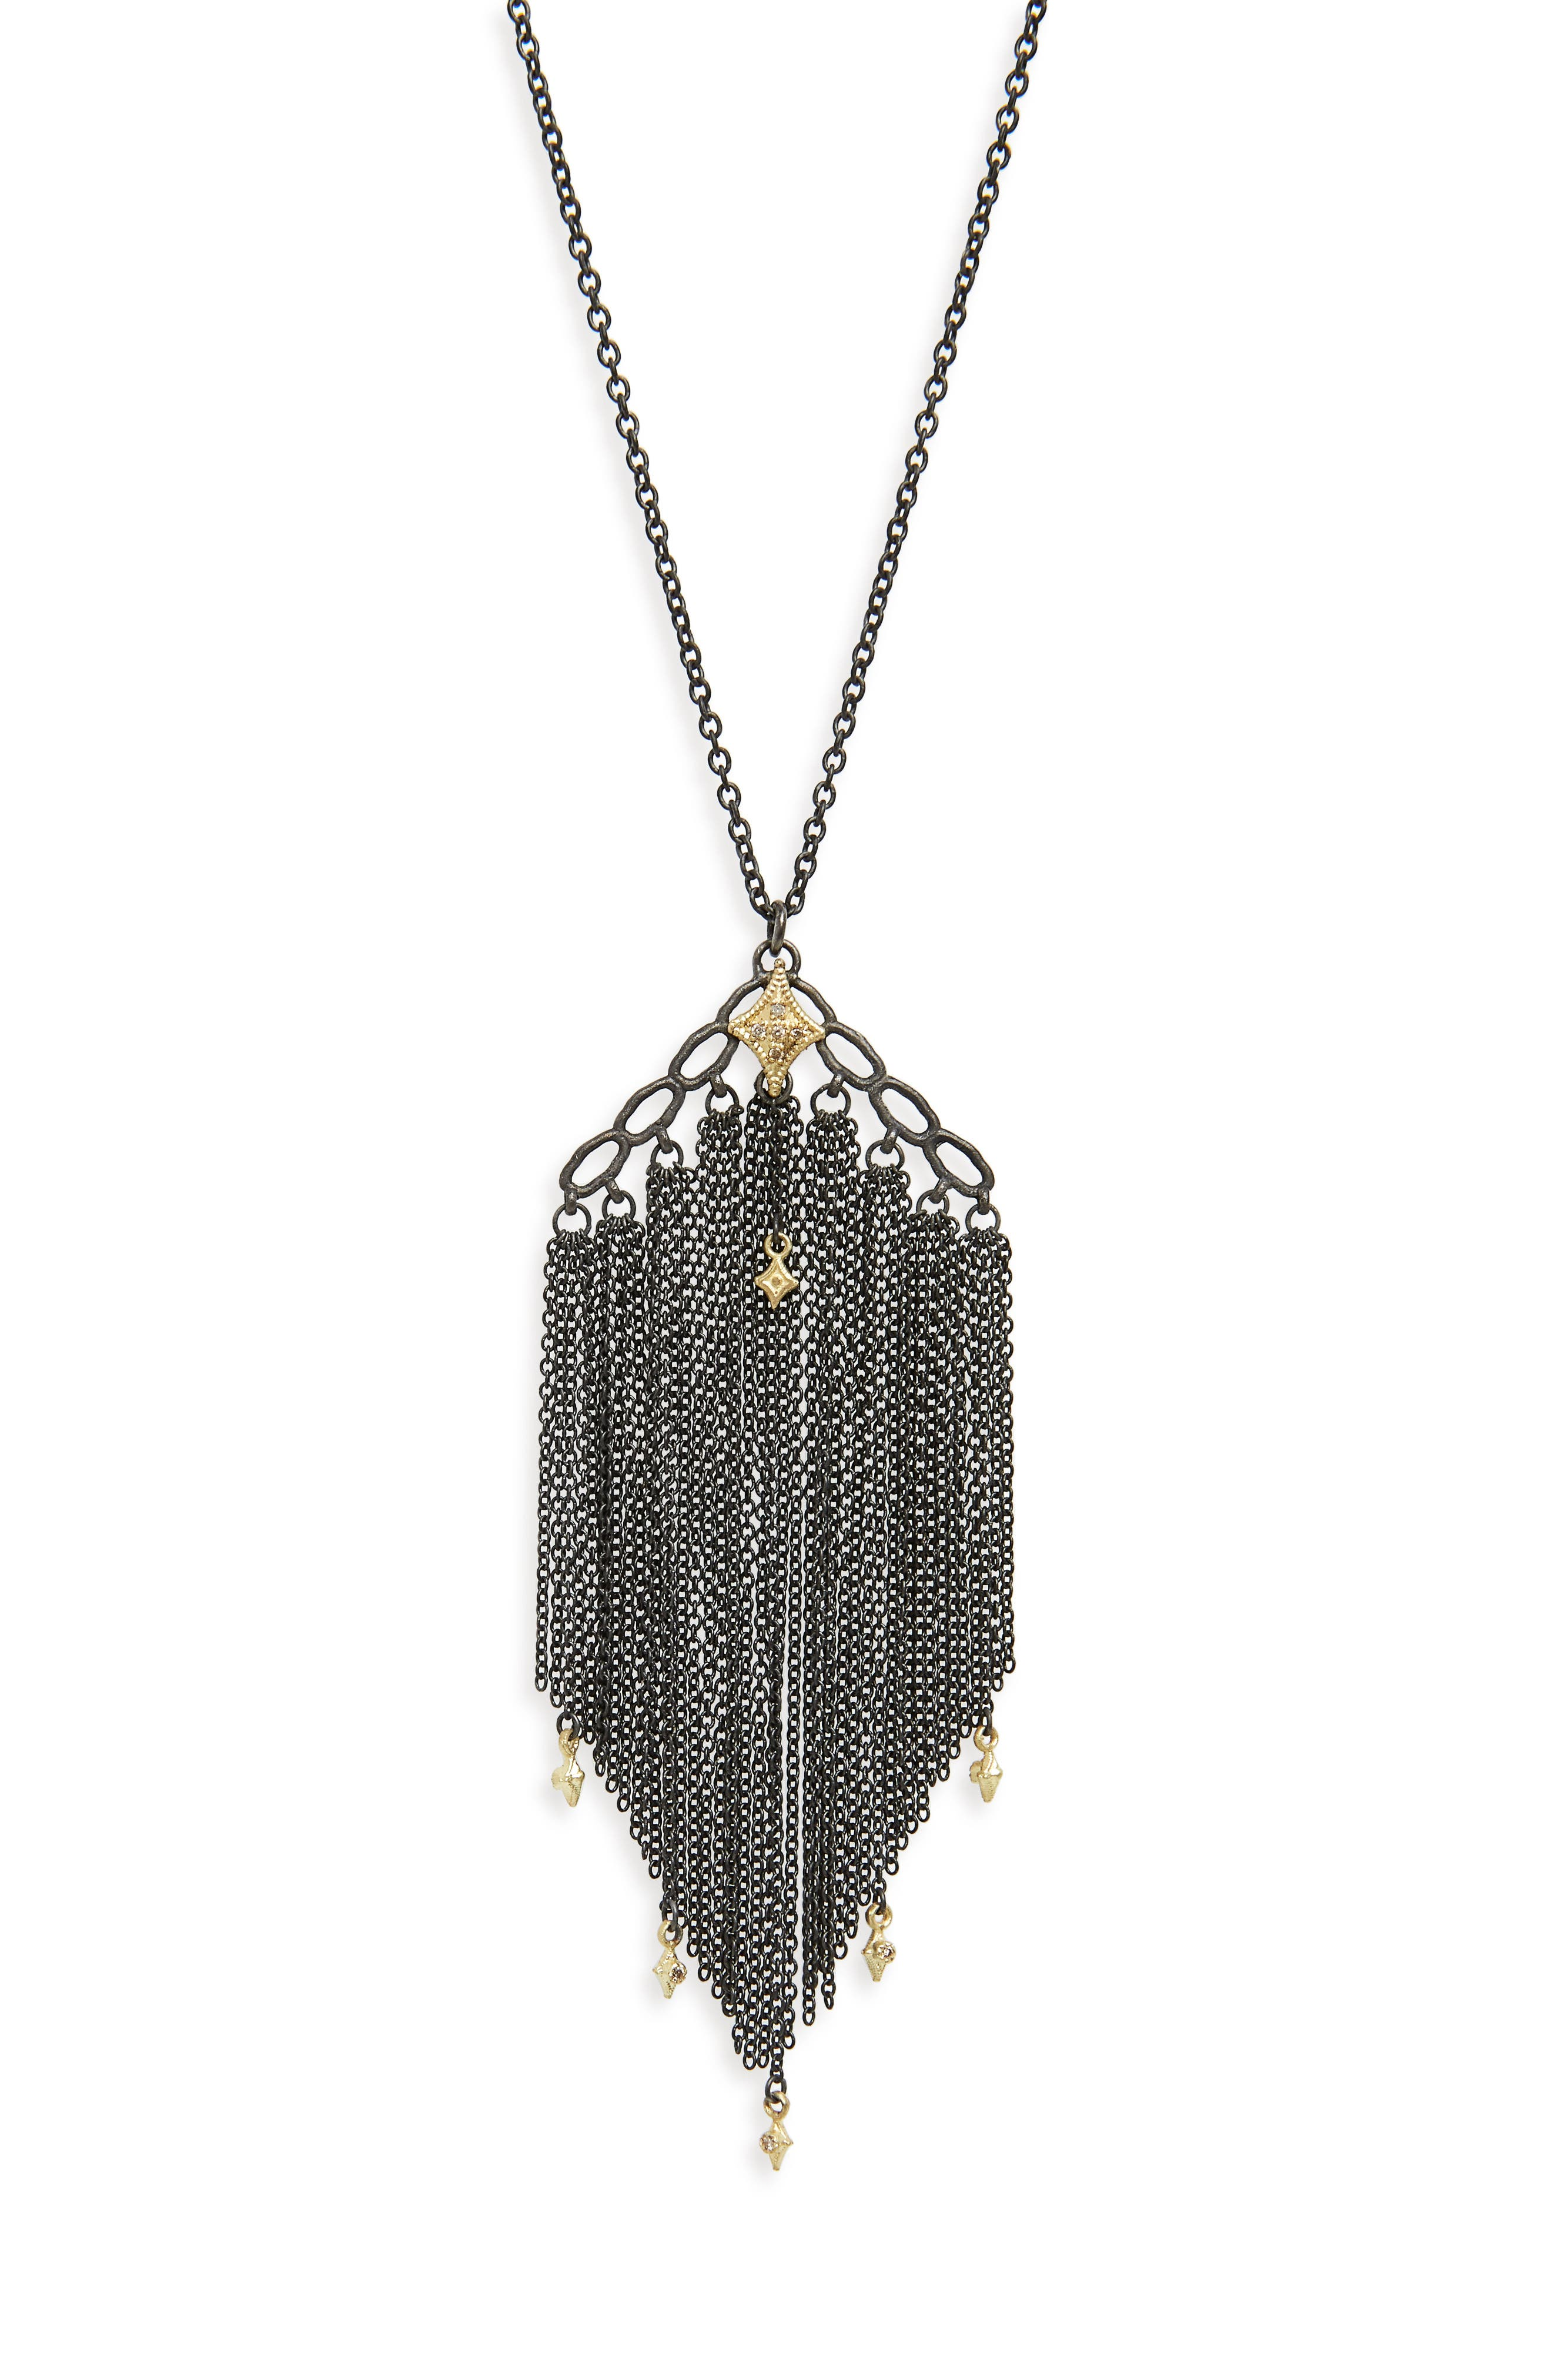 Old World Crivelli Tassel Necklace,                             Alternate thumbnail 2, color,                             Black/ Champagne Diamonds